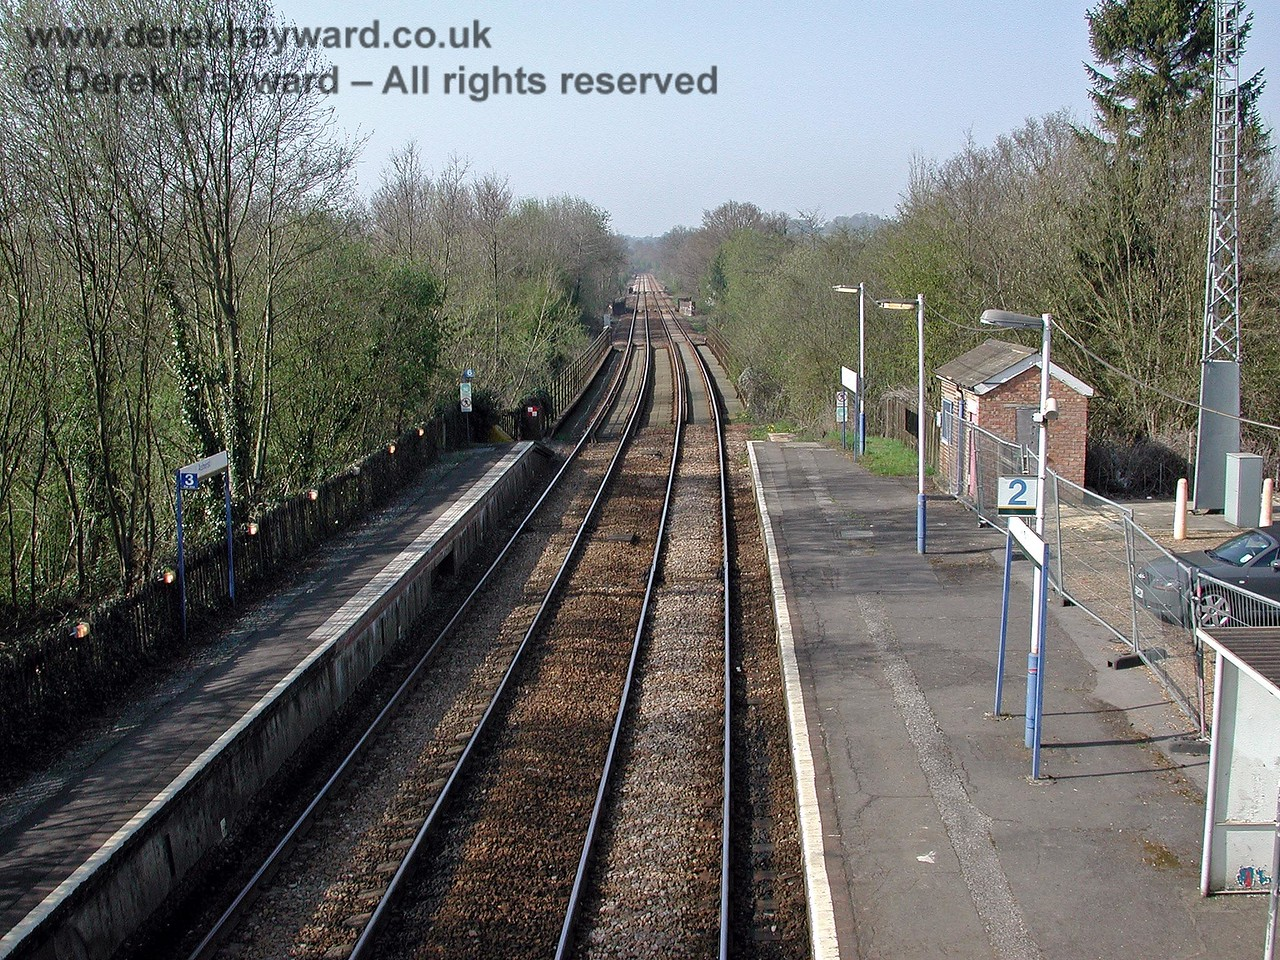 Looking north from Ashurst station in the direction of Willetts Bridge in 2003. The main station building had, by then, been demolished and the site (on the right behind the metal fence) is used for a small car park. 18.04.2003